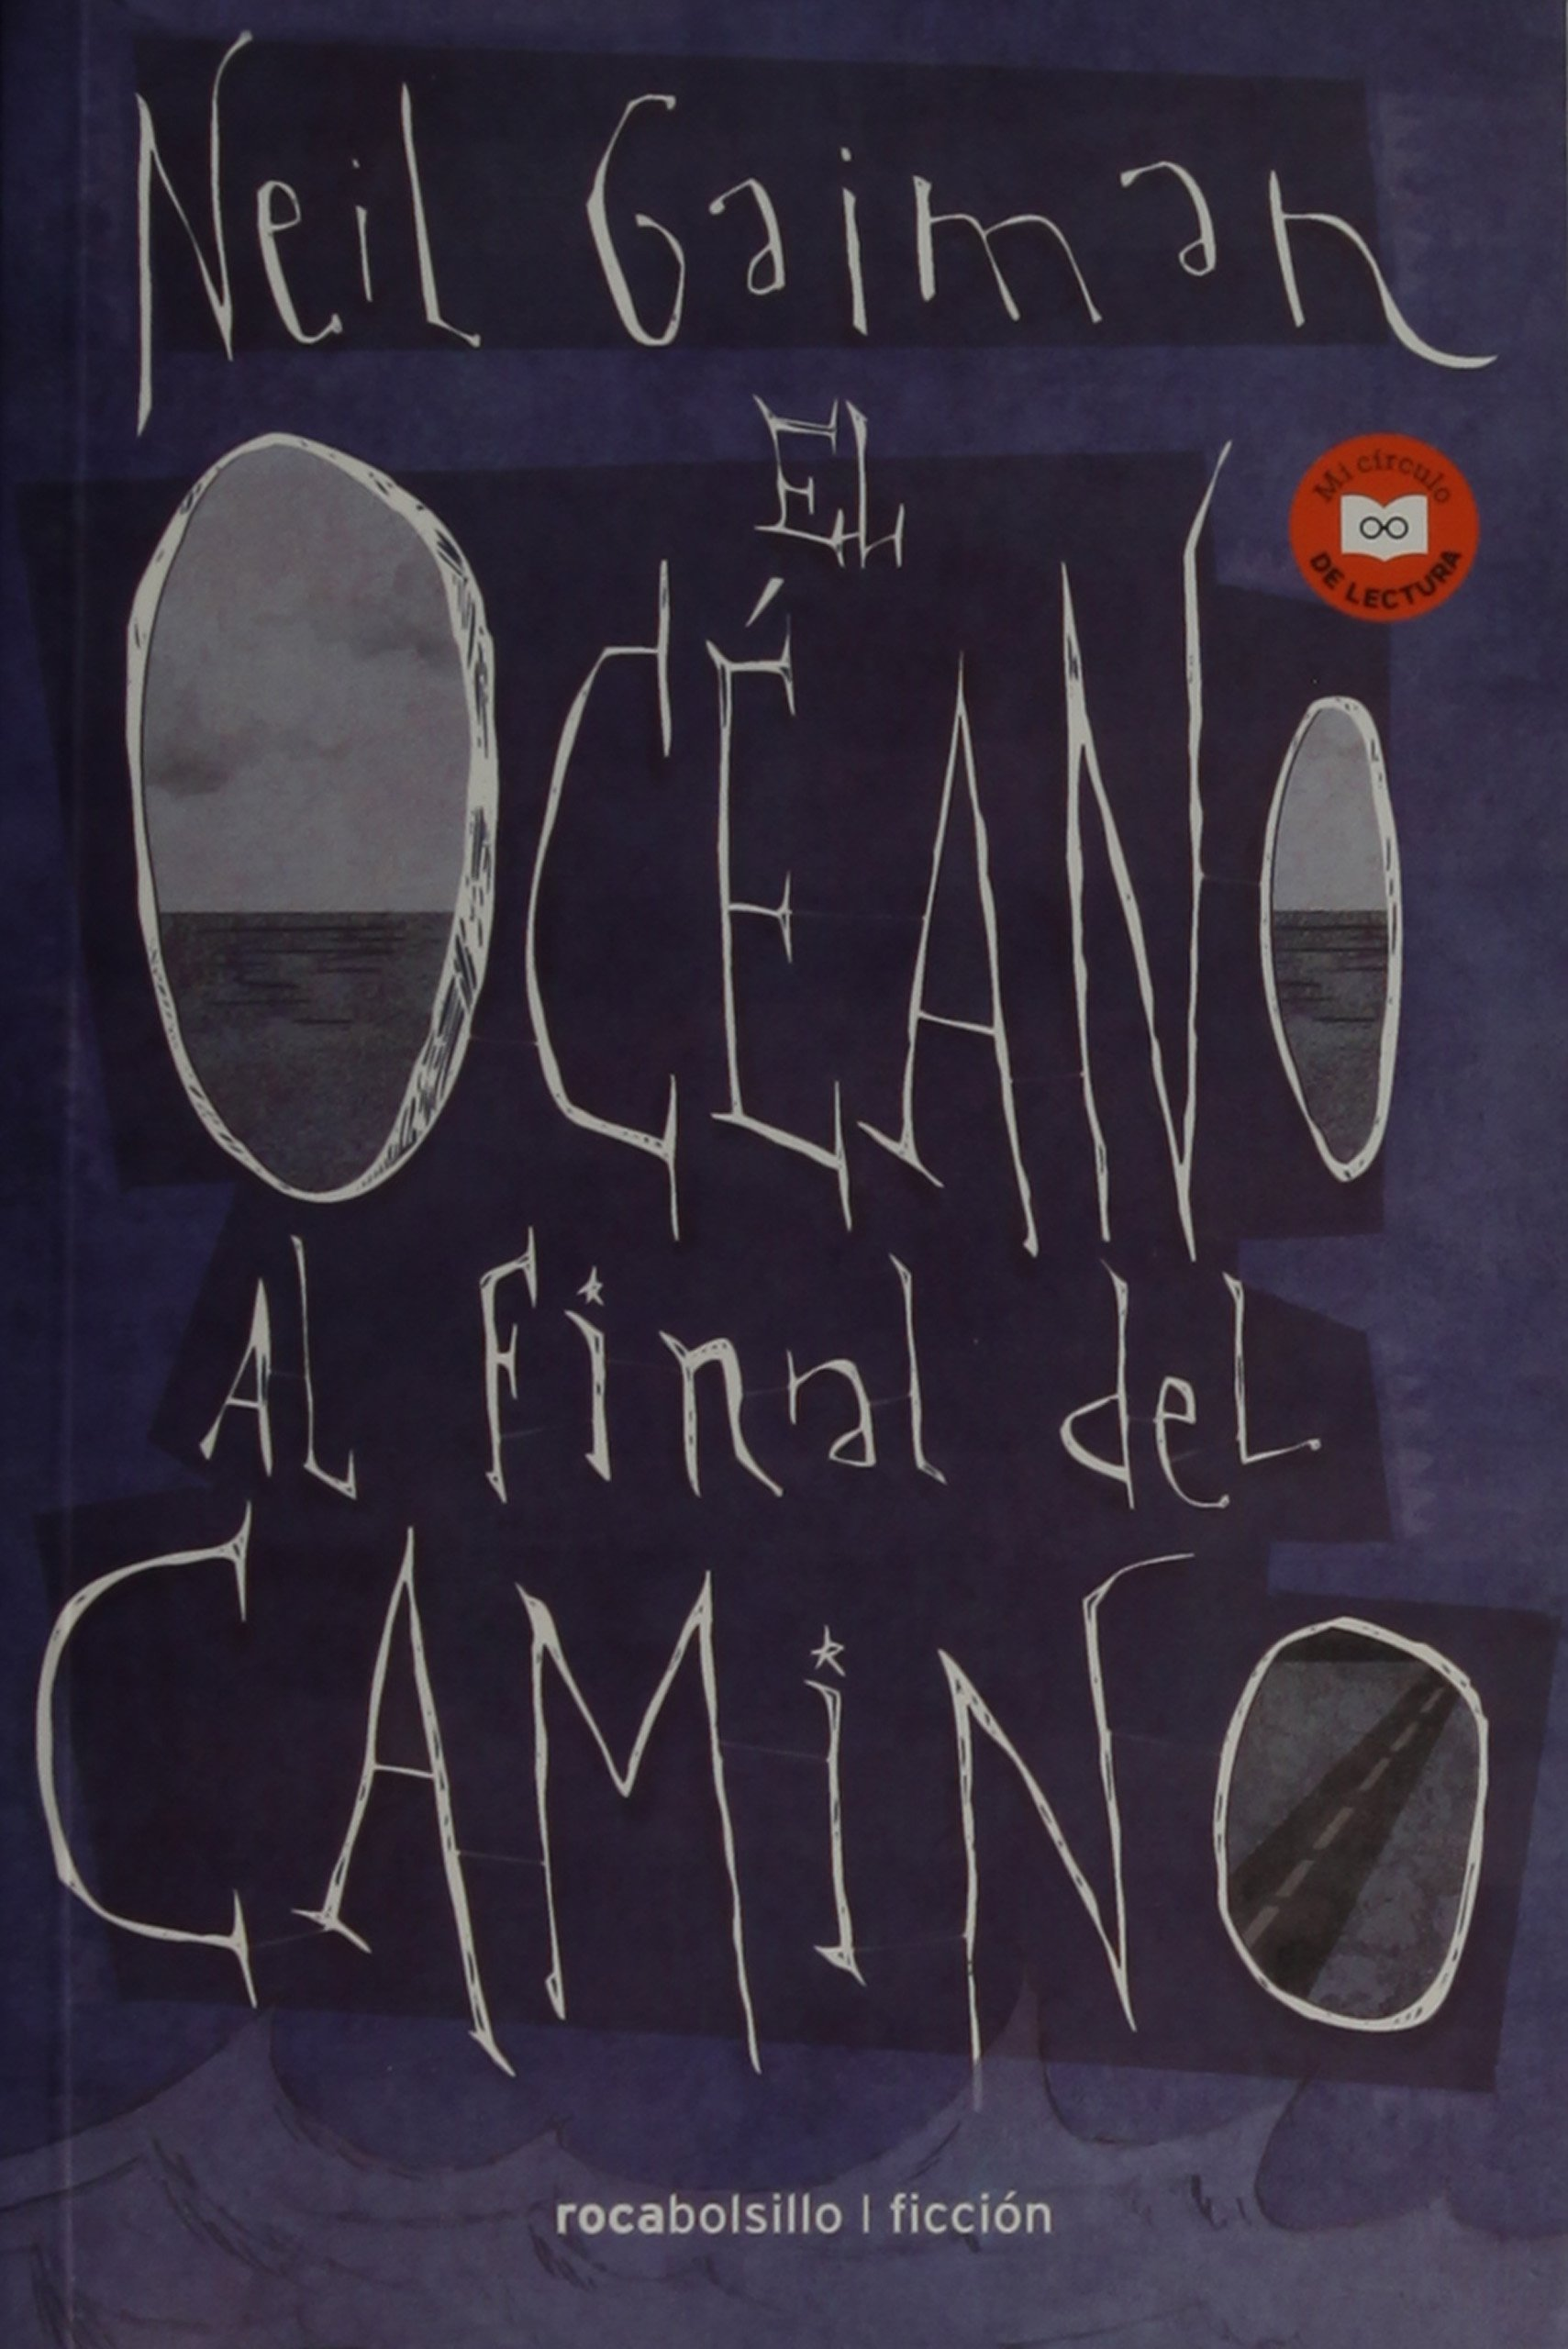 El oceano al final del camino (Spanish Edition): Neil Gaiman: 9788416240340: Amazon.com: Books